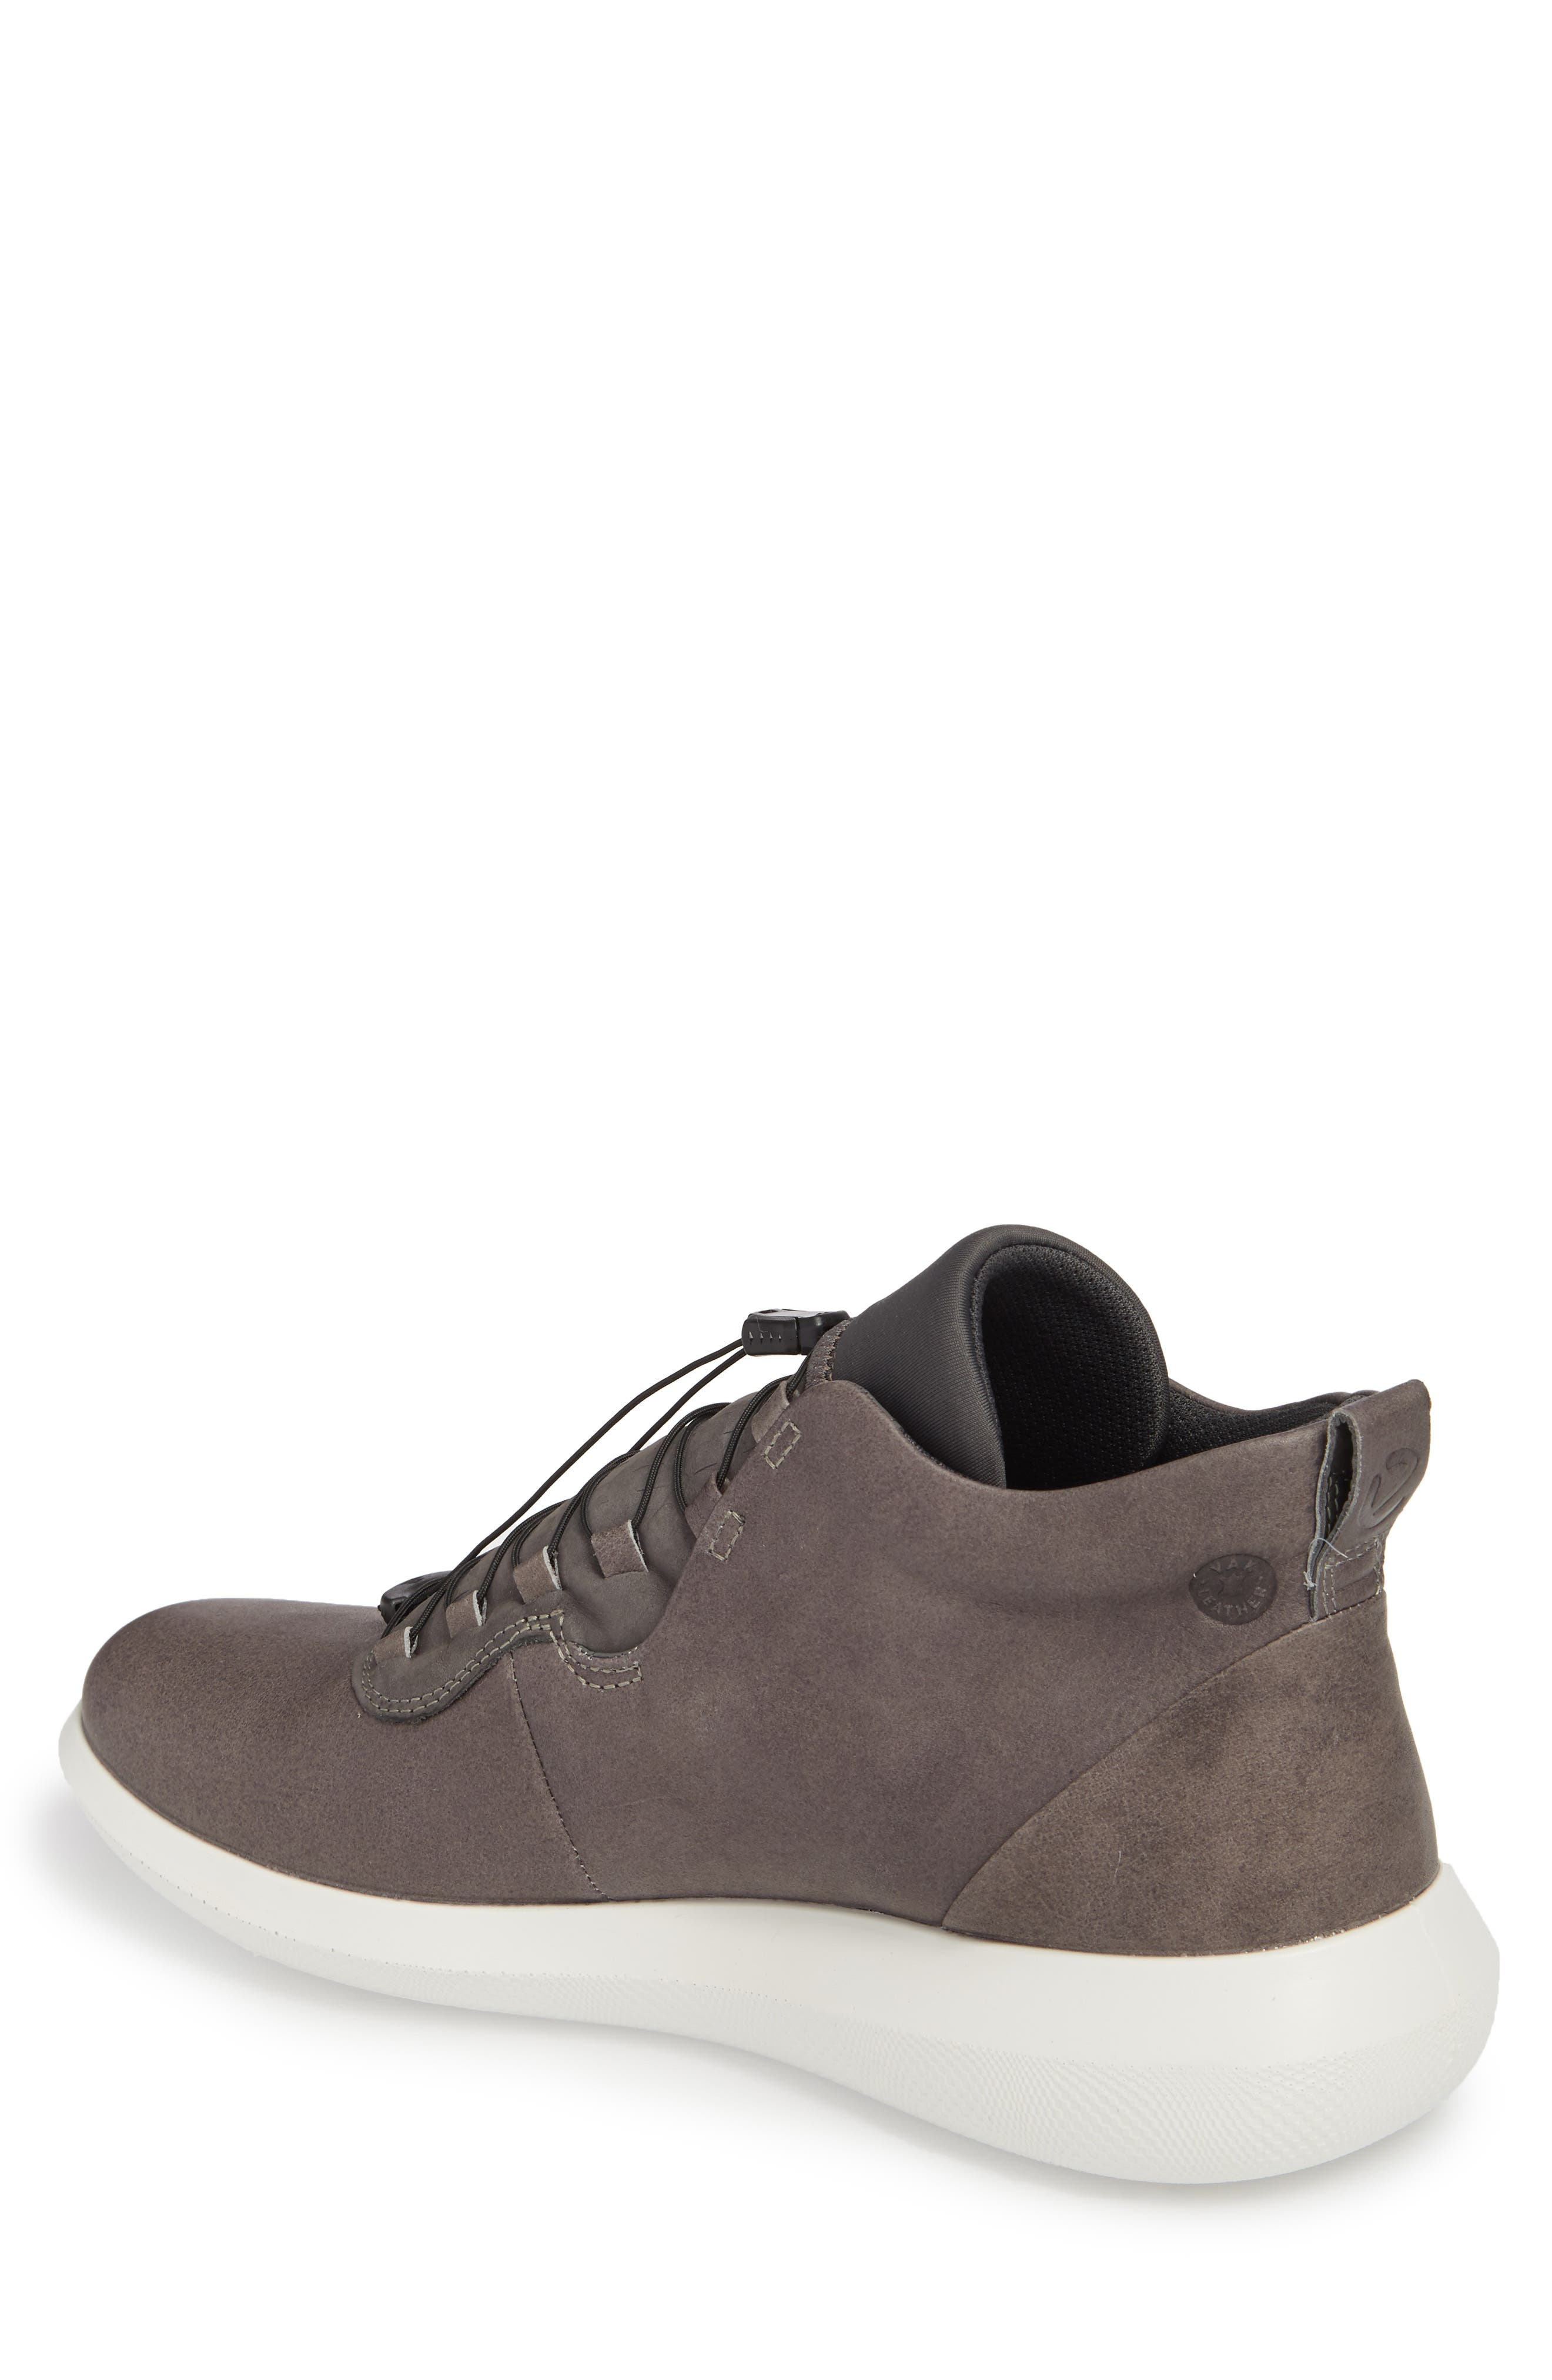 Scinapse High Top Sneaker,                             Alternate thumbnail 2, color,                             Wild Dove Leather